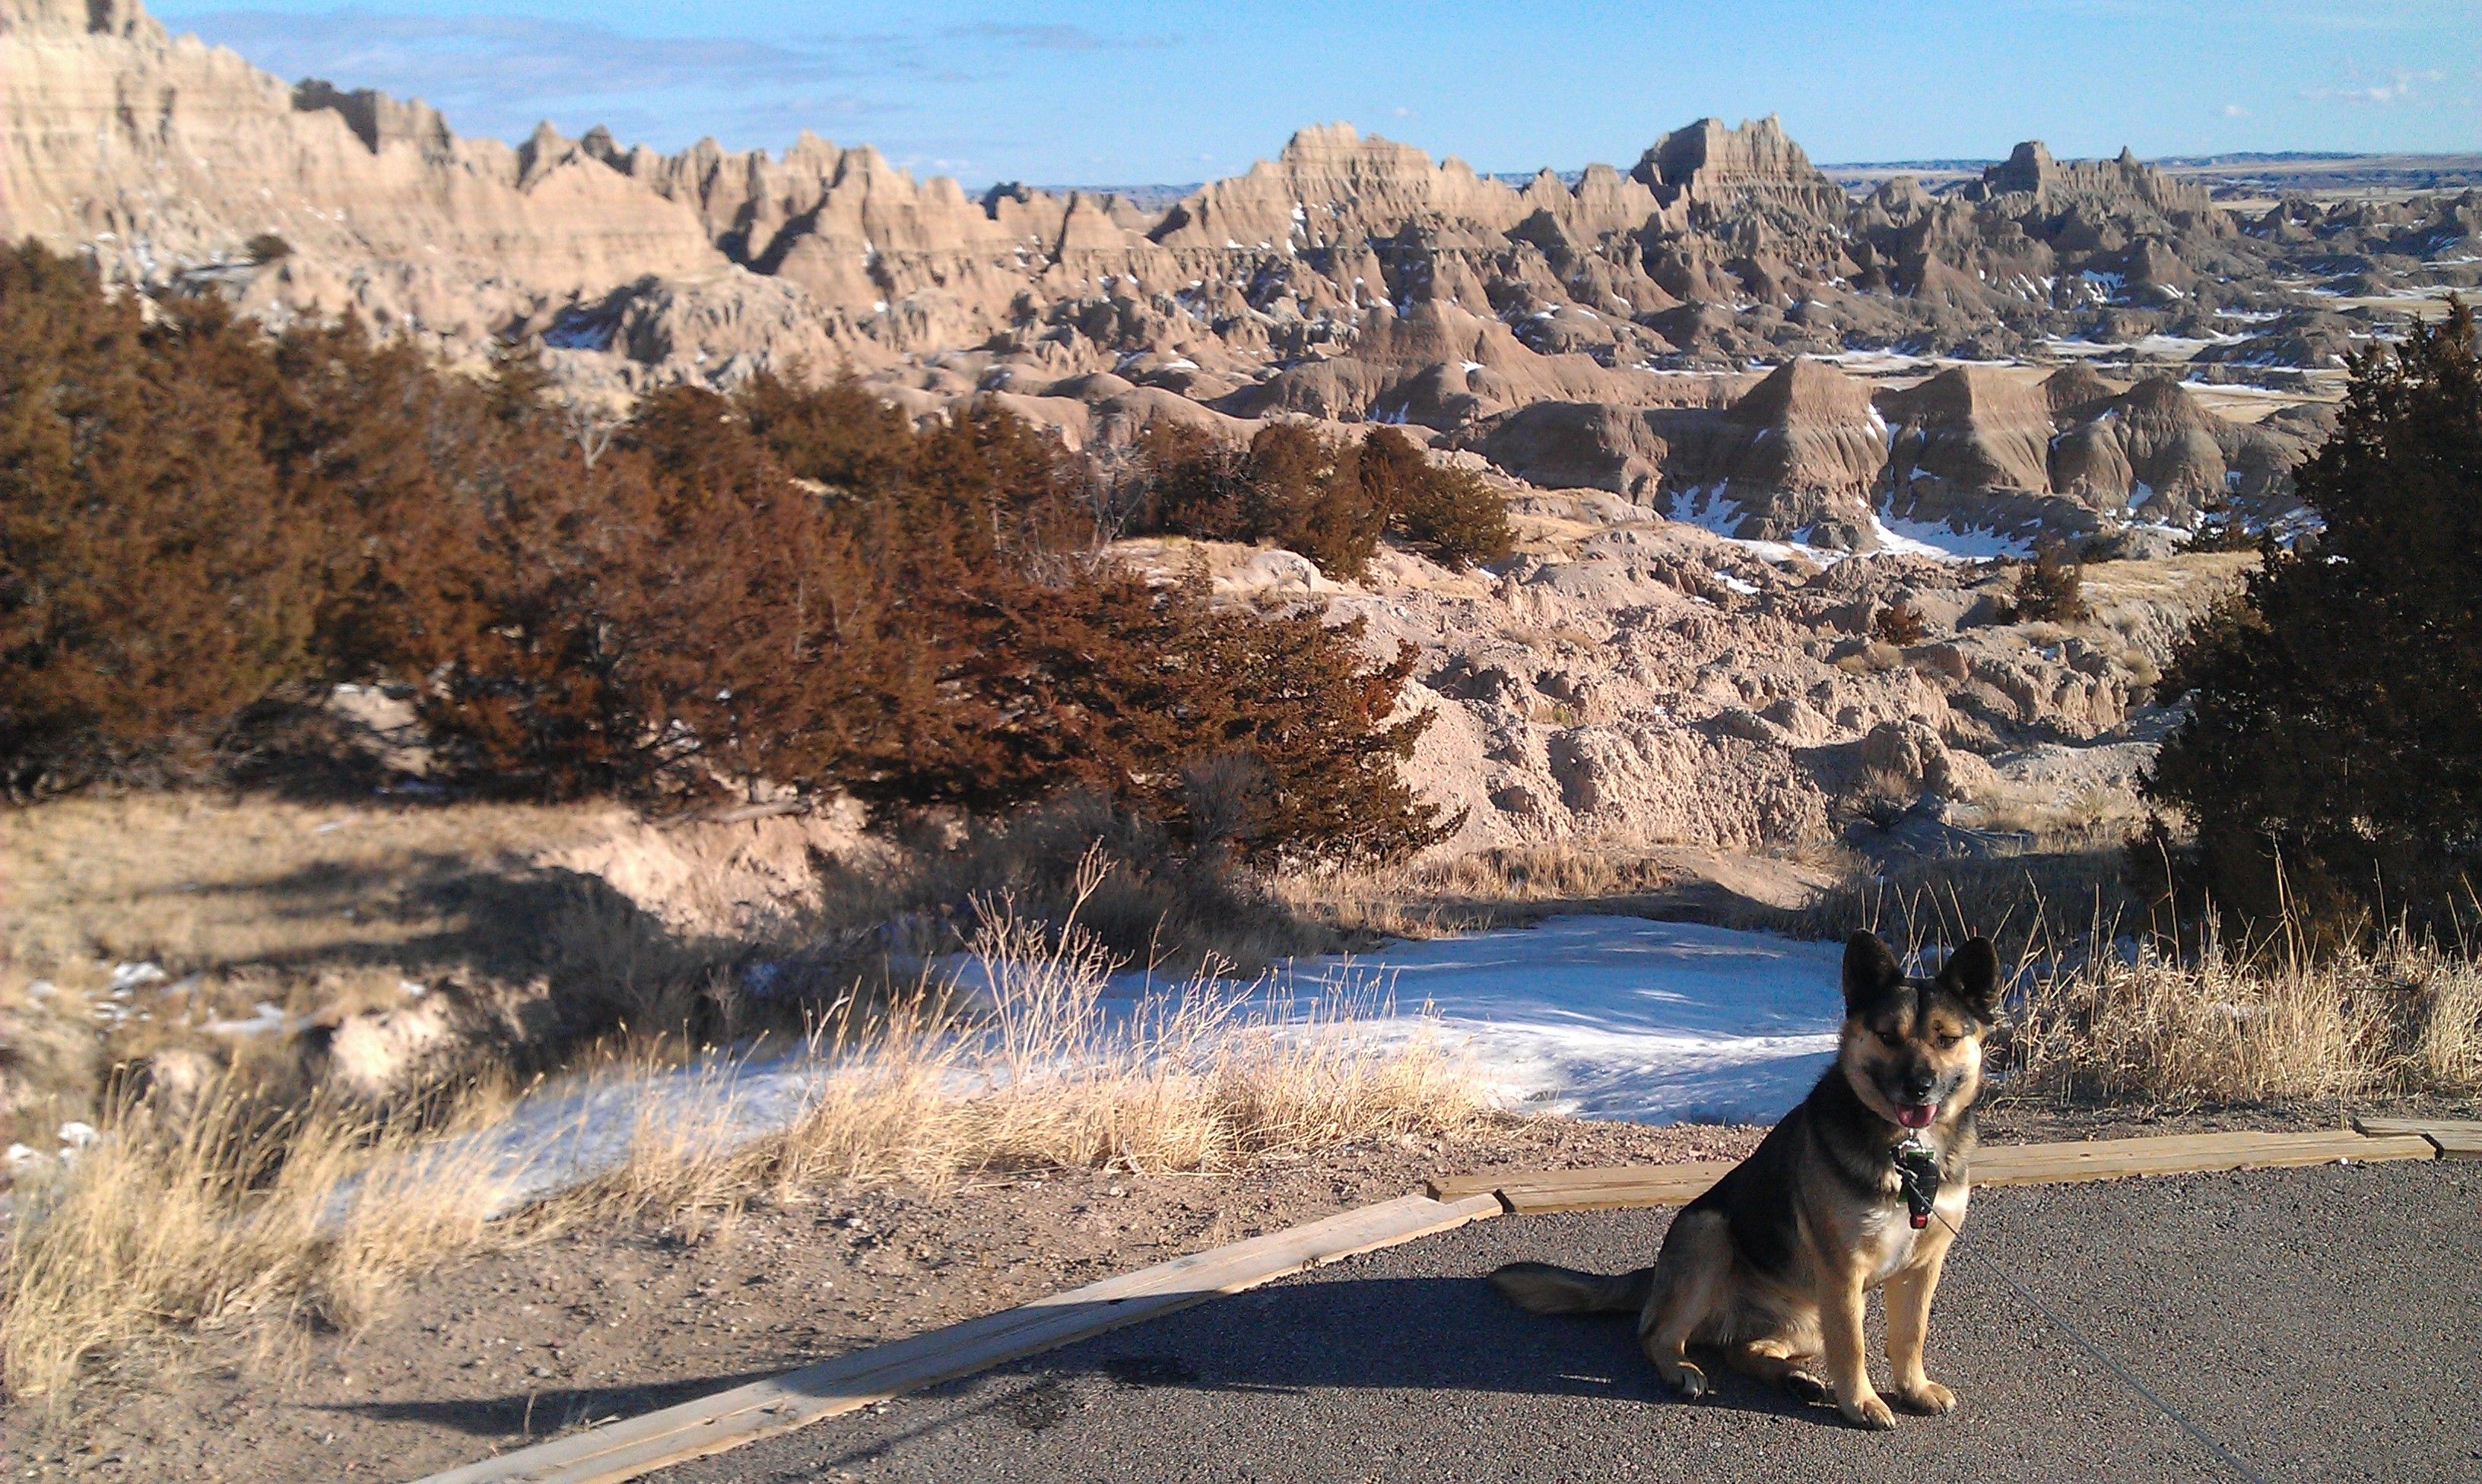 Badlands National Park, South Dakota January 2013